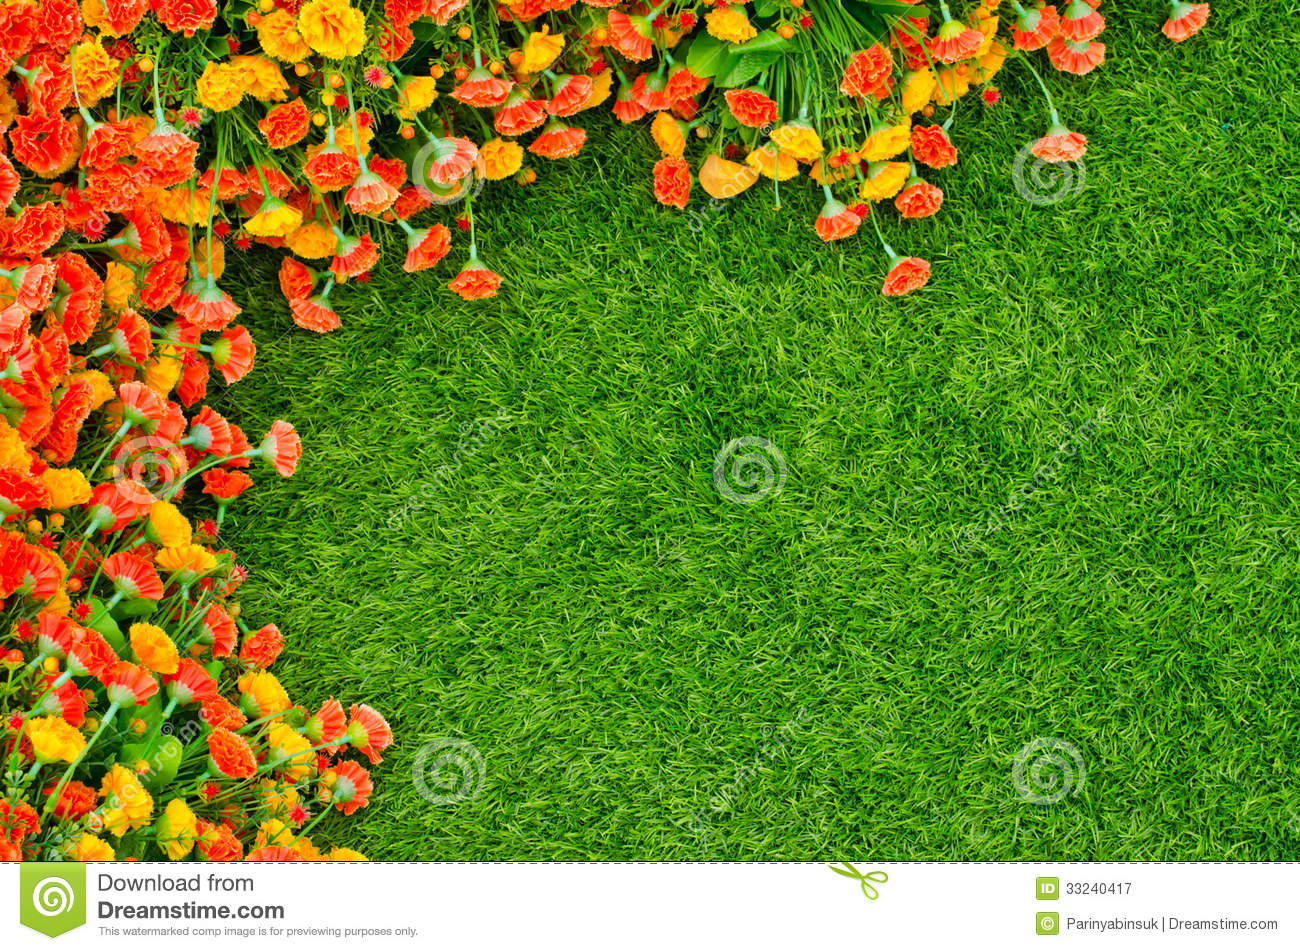 Artificial Grass And Flowers Top View Texture